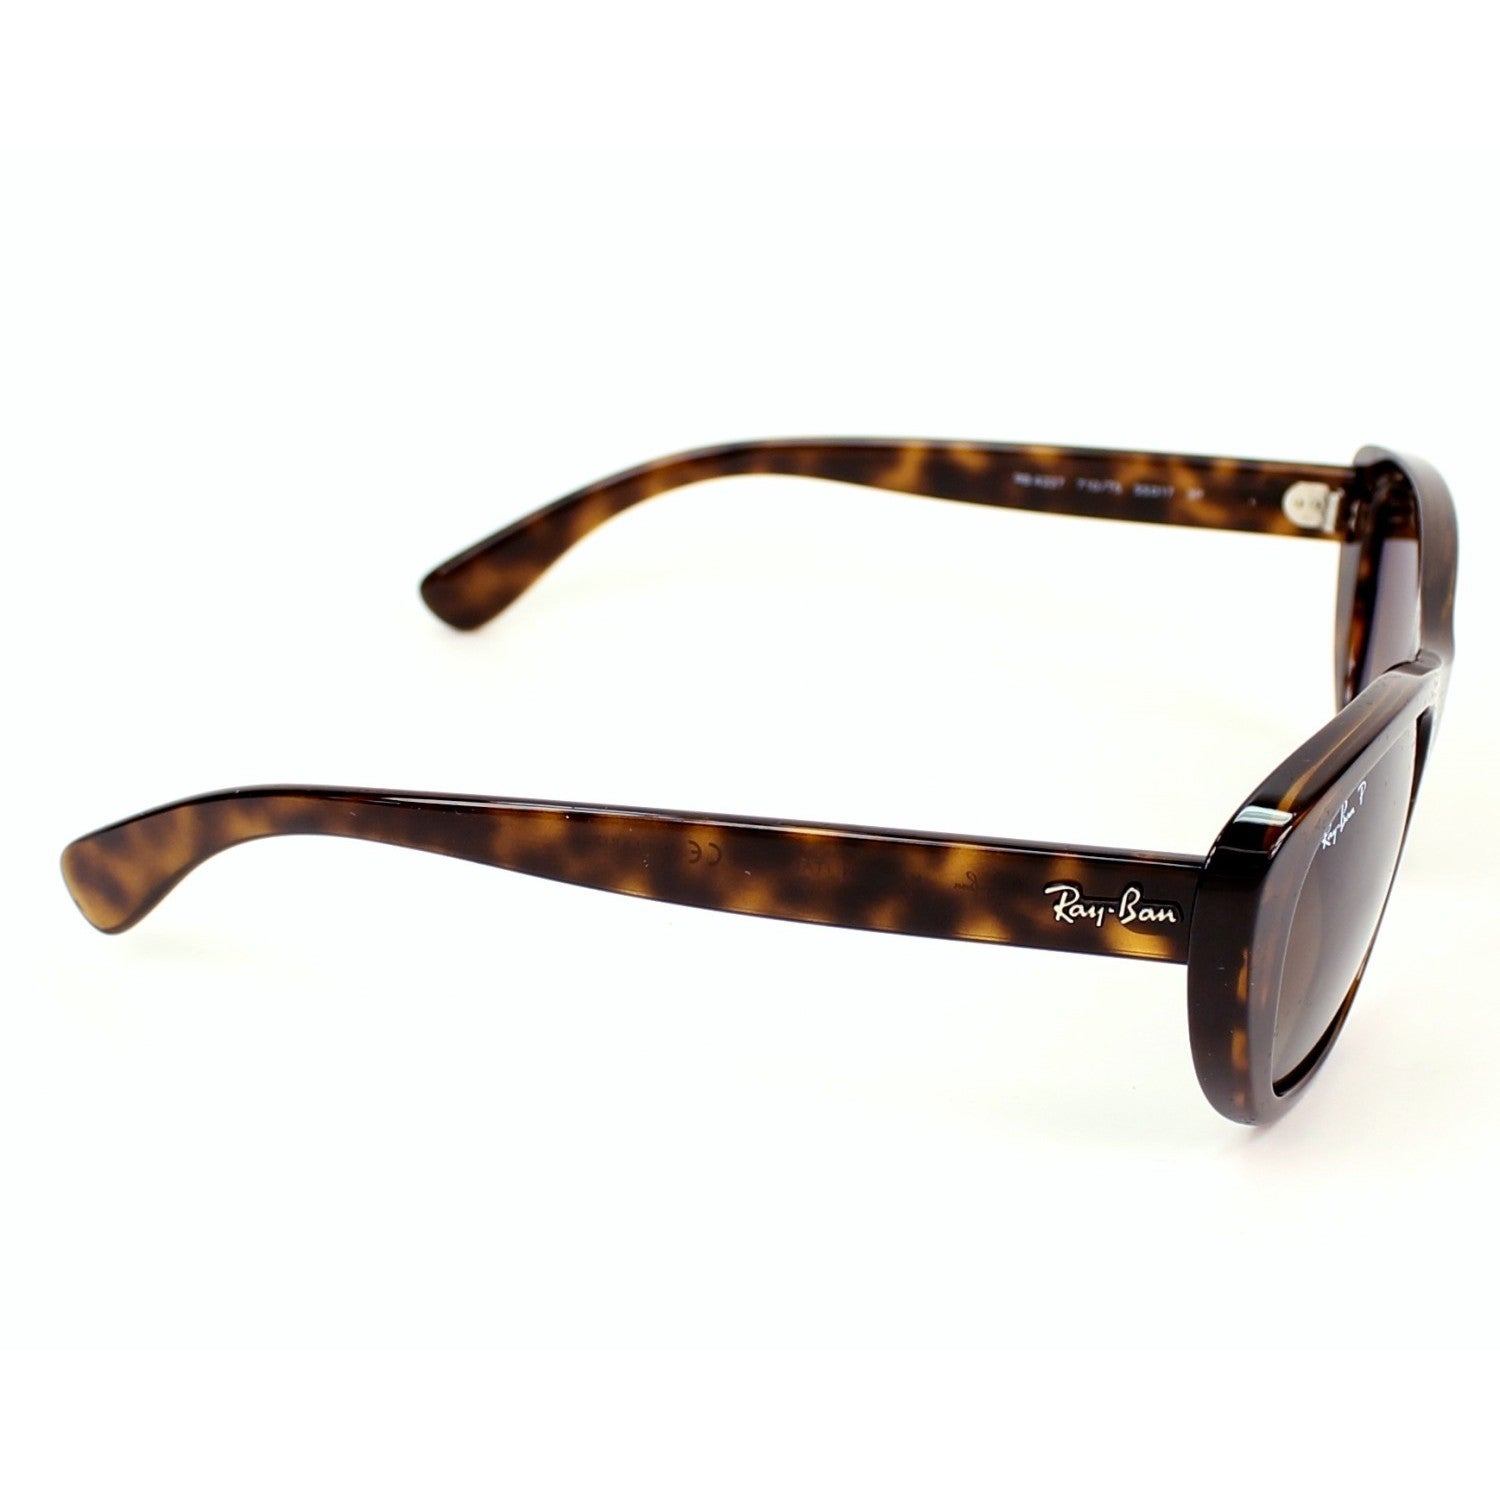 aea98e80b4 Shop Ray-Ban RB4227 710 T5 55mm Polarized Brown Gradient Lenses Tortoise  Frame Sunglasses - Free Shipping Today - Overstock - 11708053